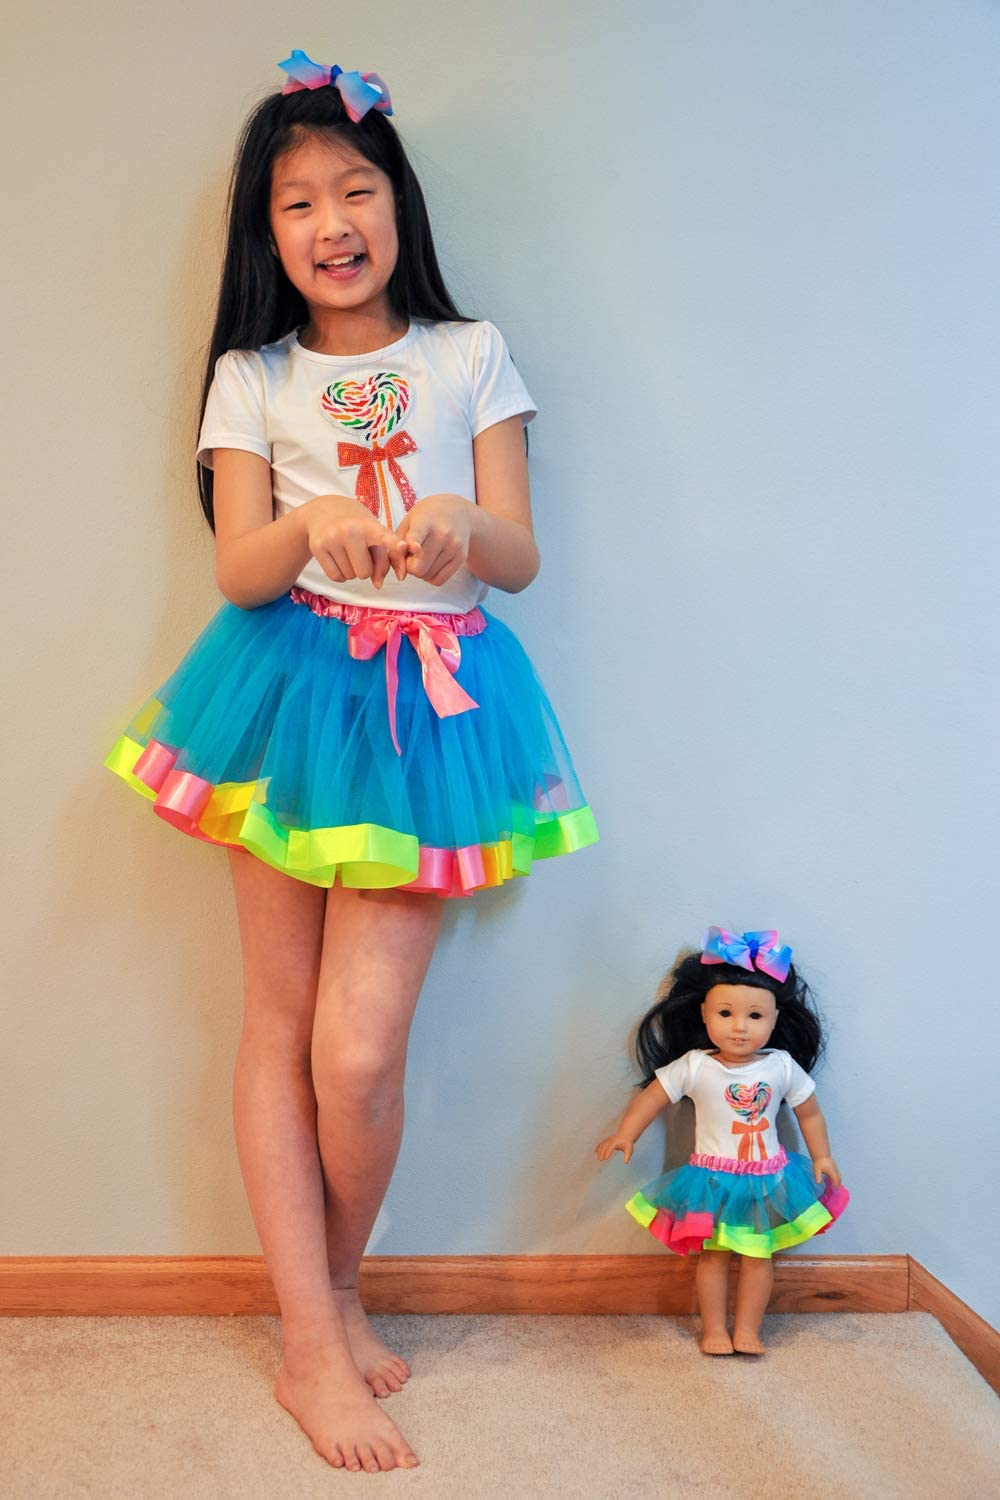 Ecore Fun Matching Girl /& Doll Dresses Clothes Outfits for 7-9 Years Girls and American 18 Inch Girl Doll